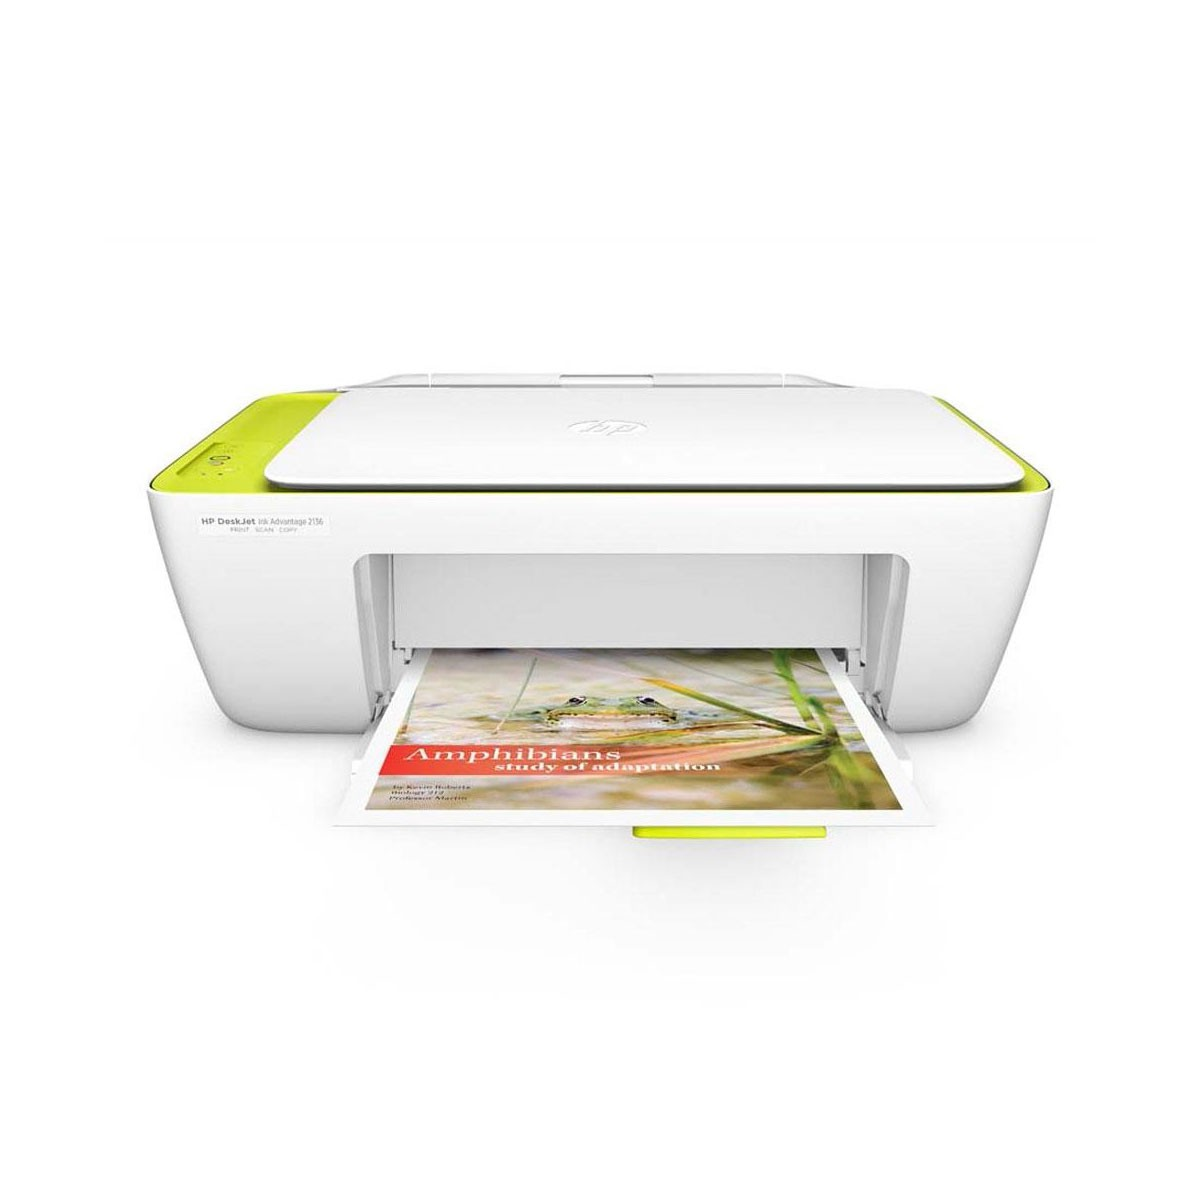 Multifuncional HP Color Deskjet Ink Advantage 2136 - Bivolt